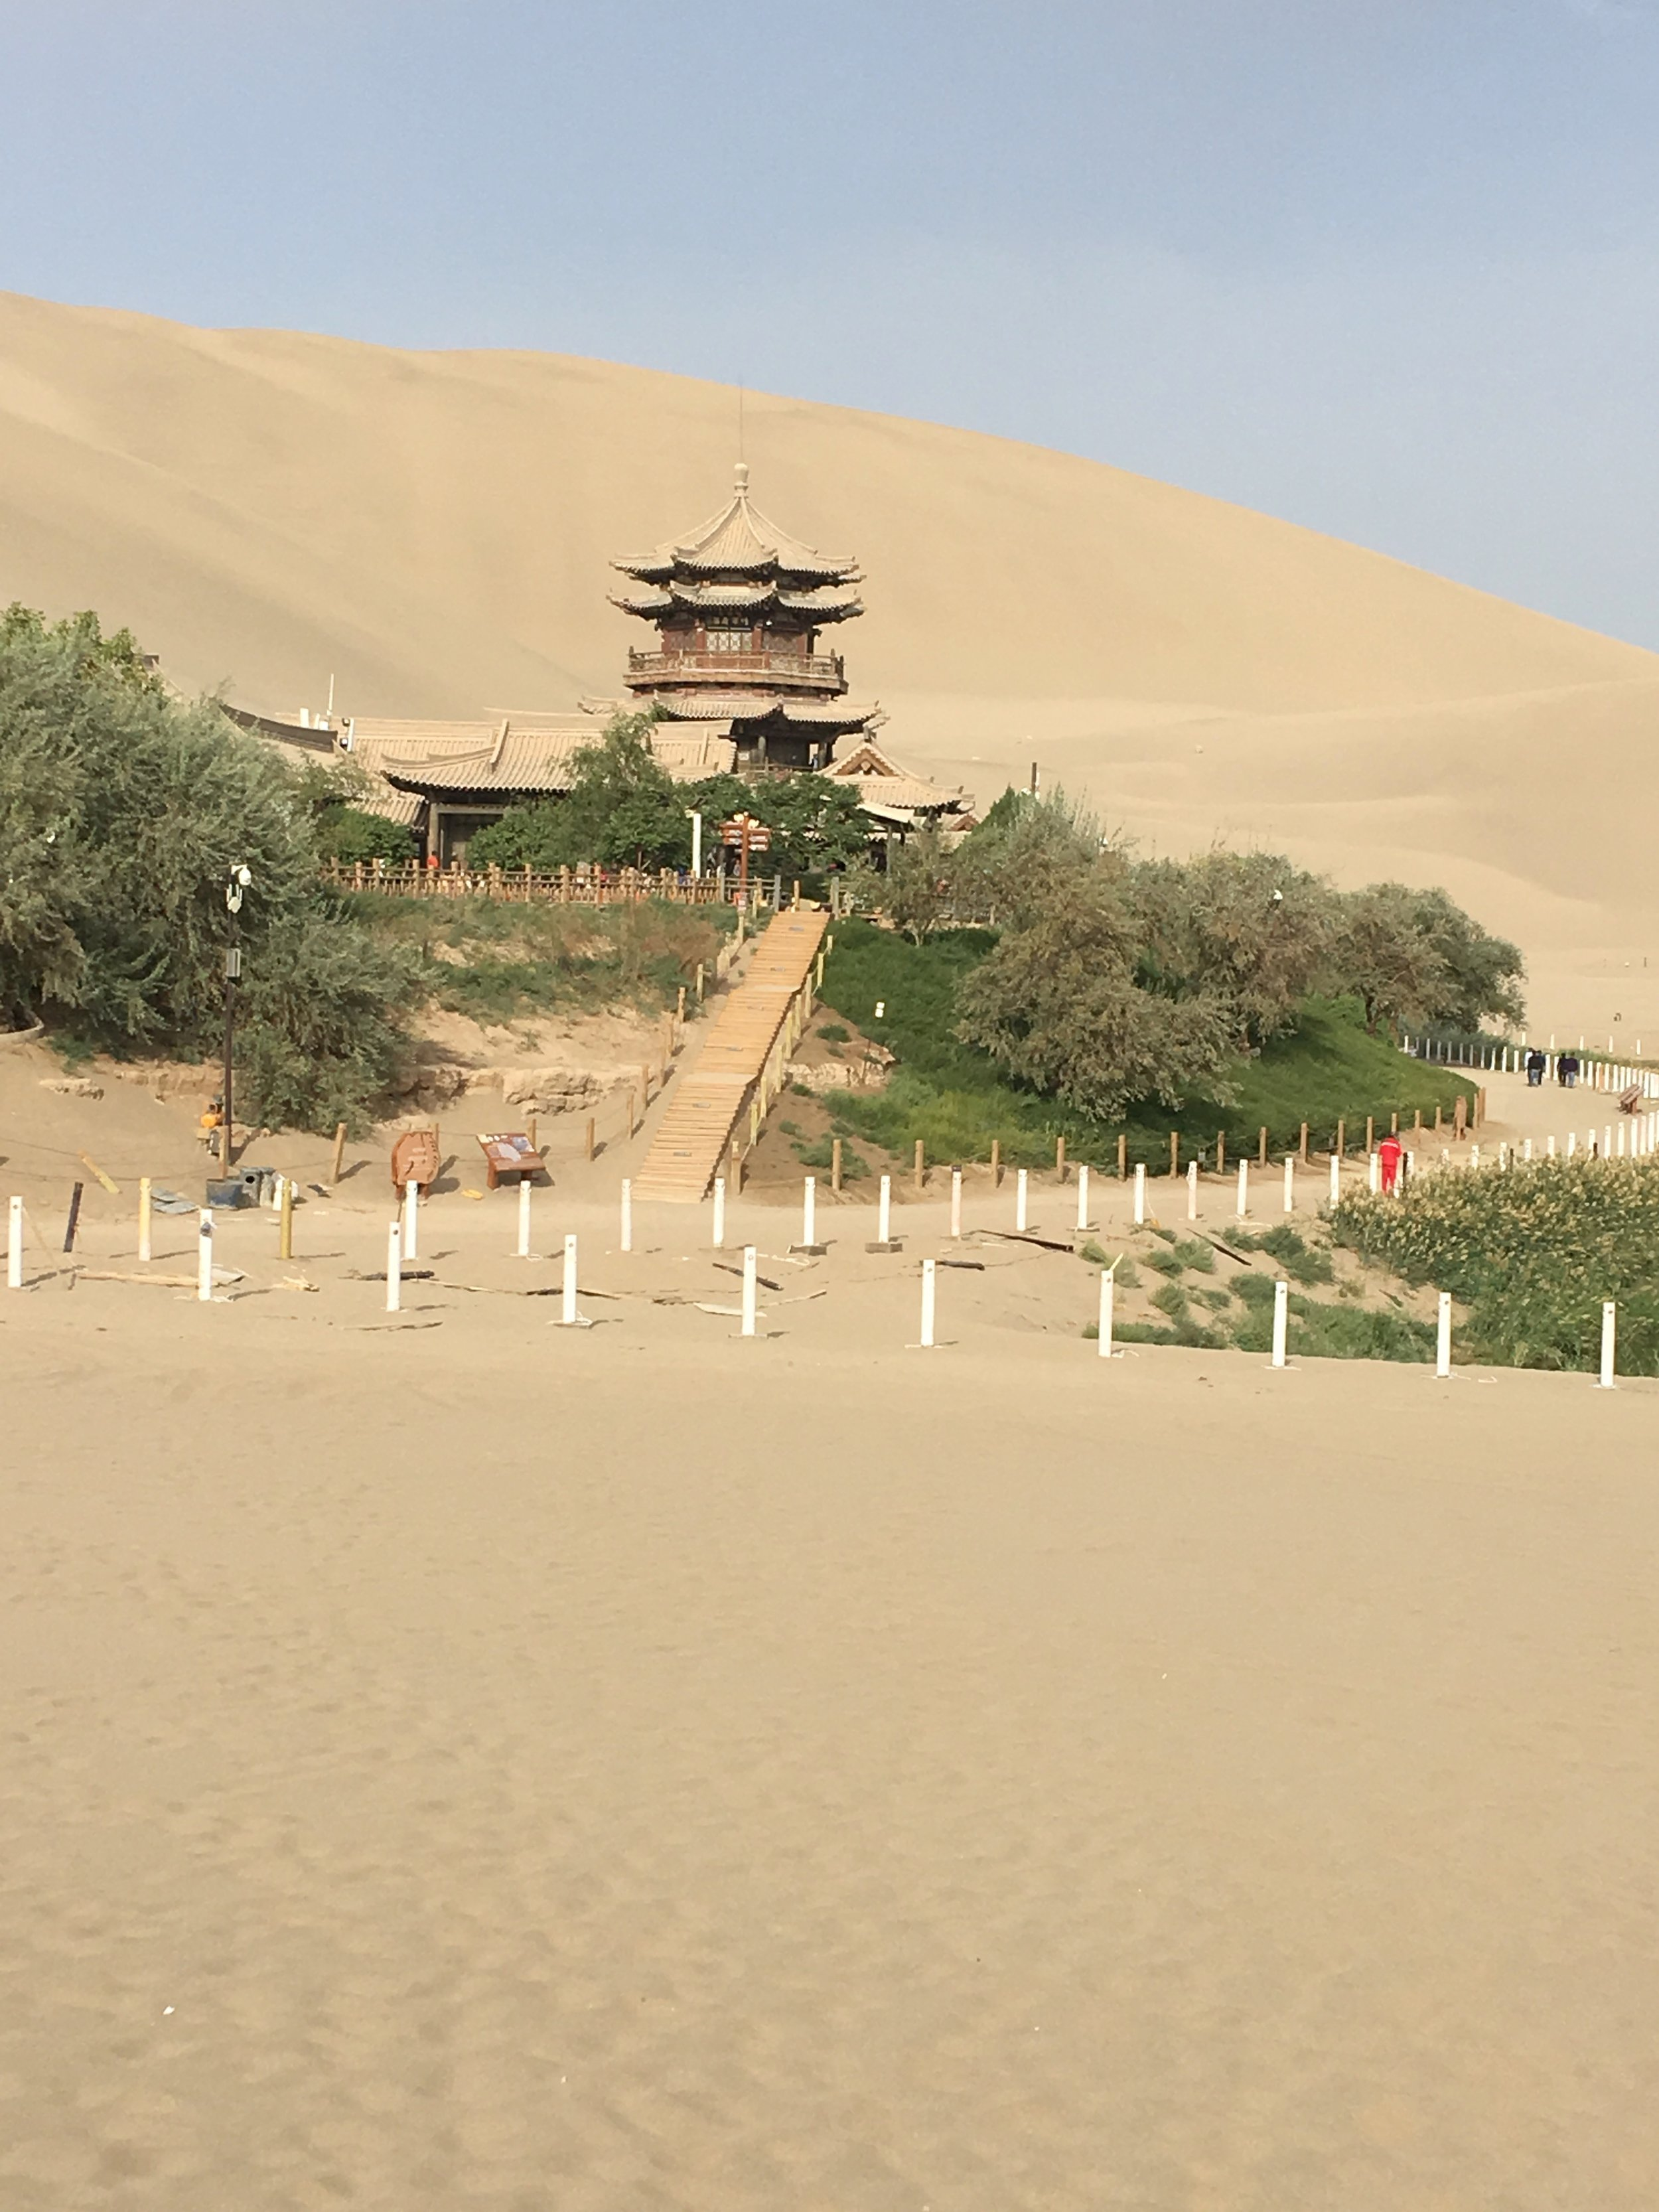 Pagoda in the Dunes -